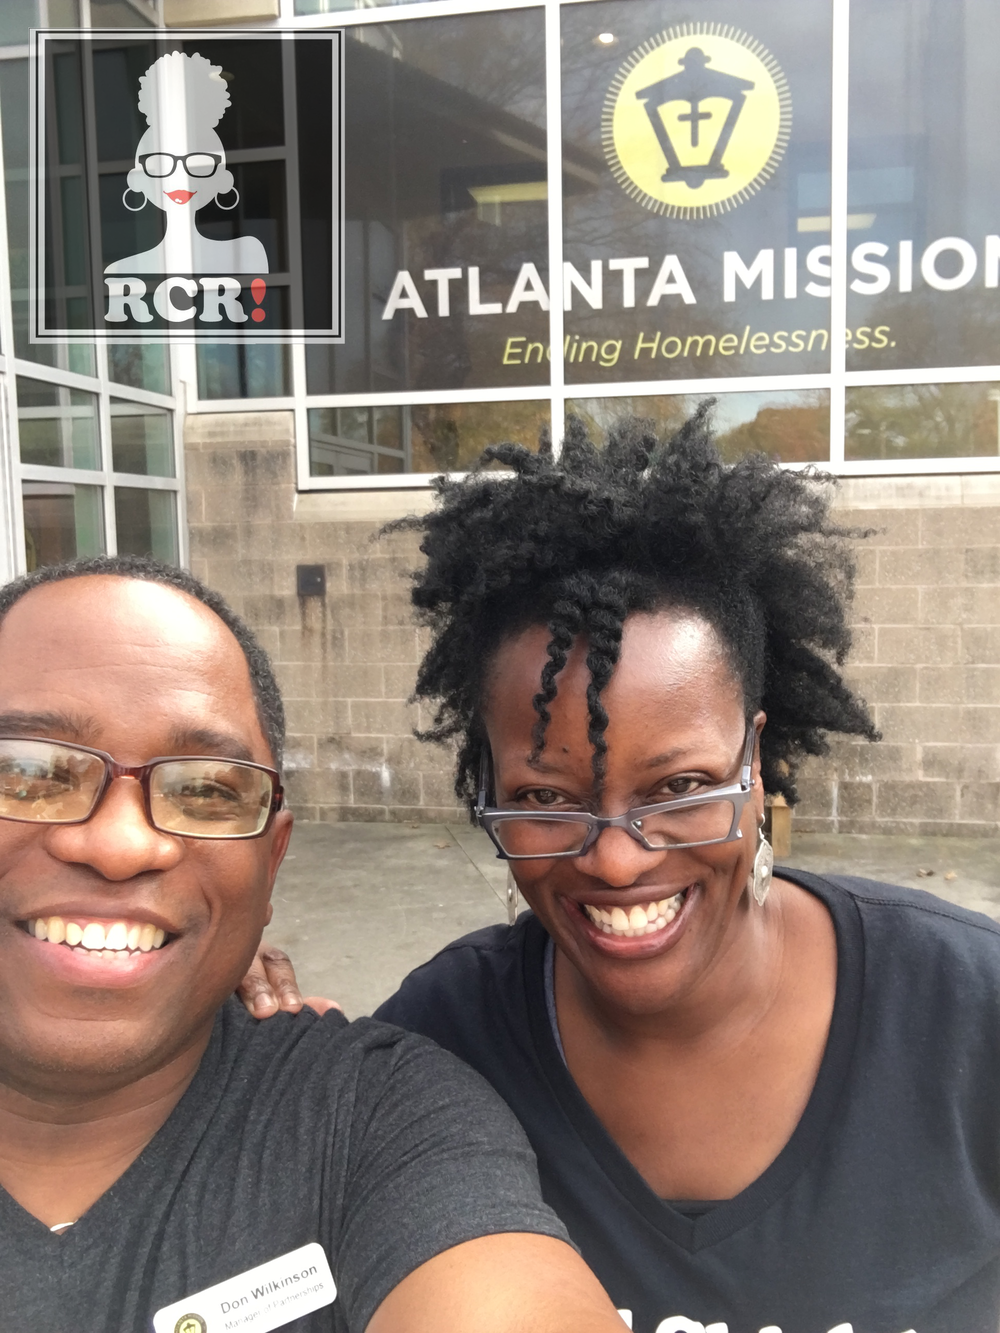 Real Chicks Rock! & The Atlanta Mission